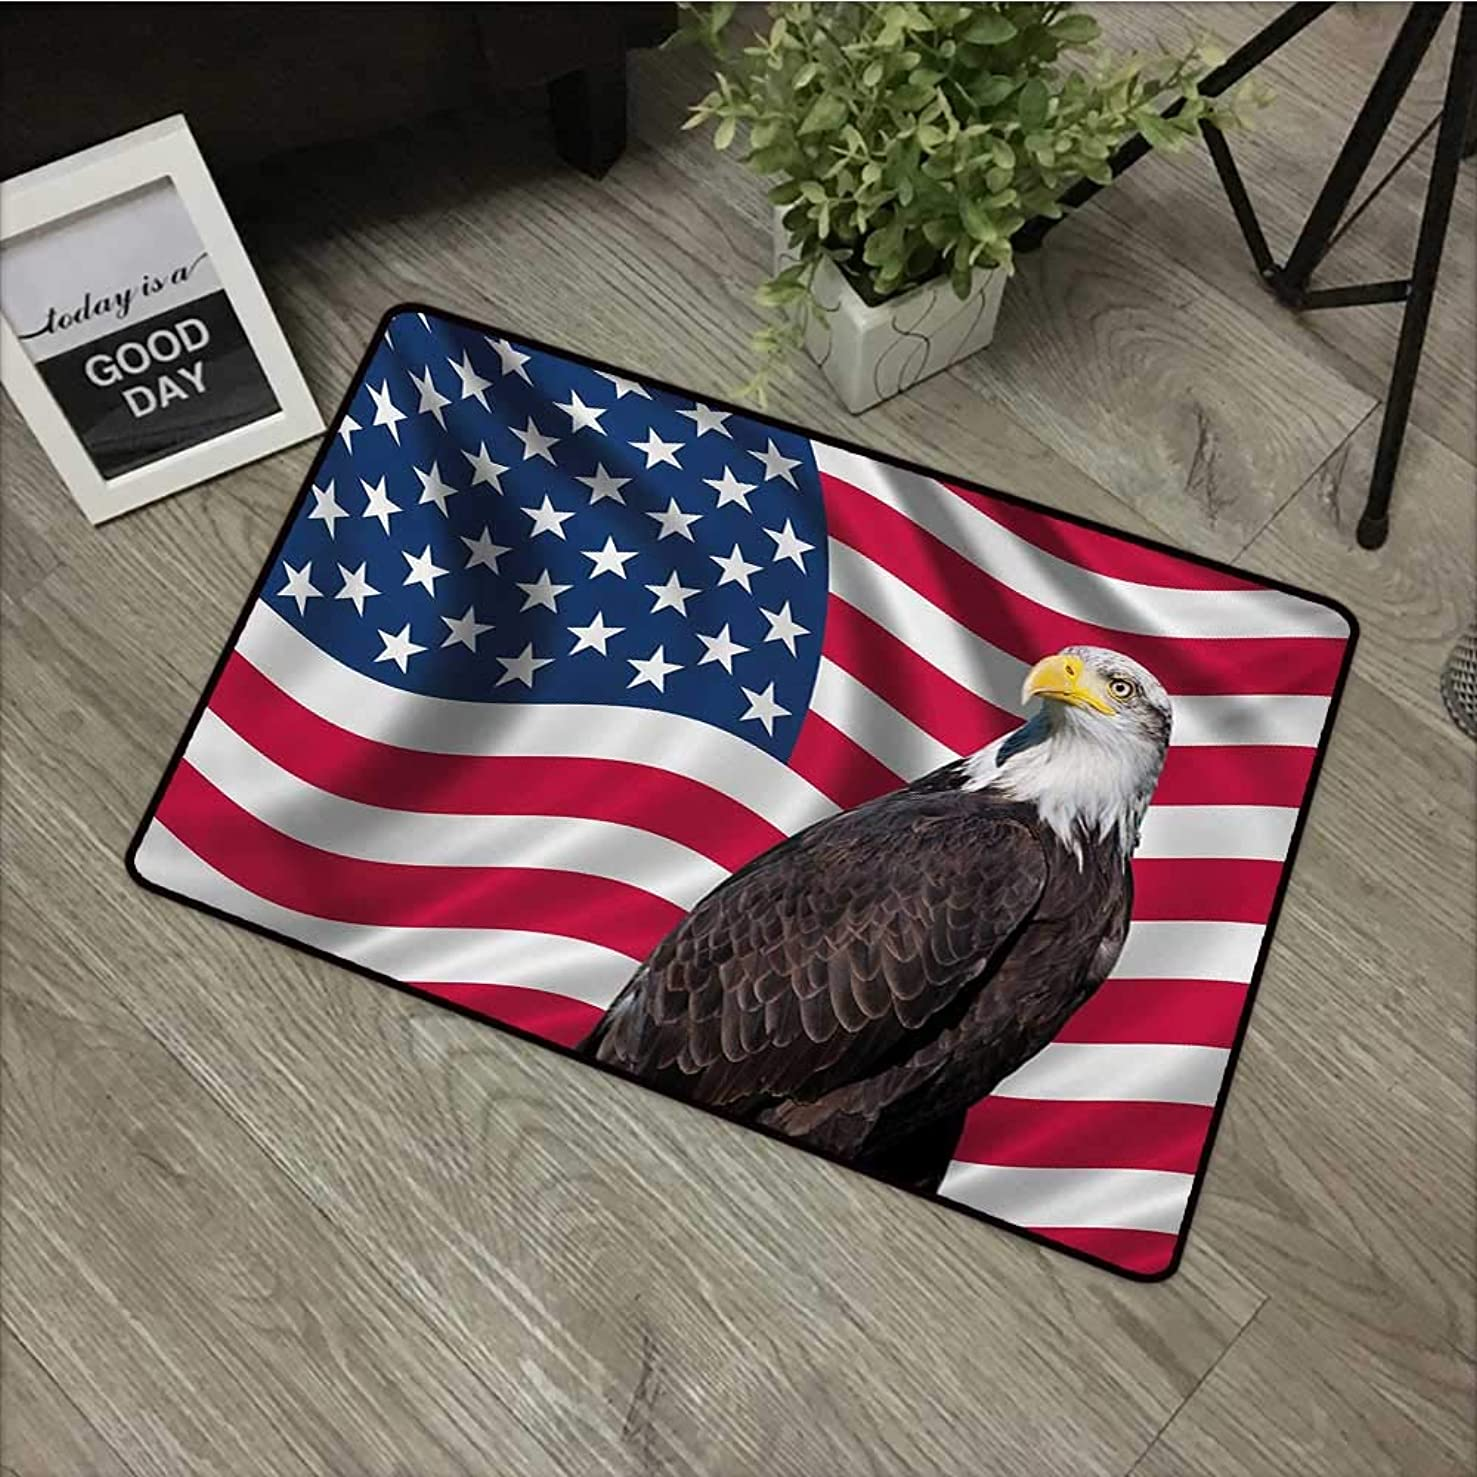 Door mat W31 x L47 INCH Eagle,Patriotic Symbols of The Land with an American Flag with a Bald Eagle Nationalism,Multicolor Natural dye Printing to Protect Your Baby's Skin Non-Slip Door Mat Carpet